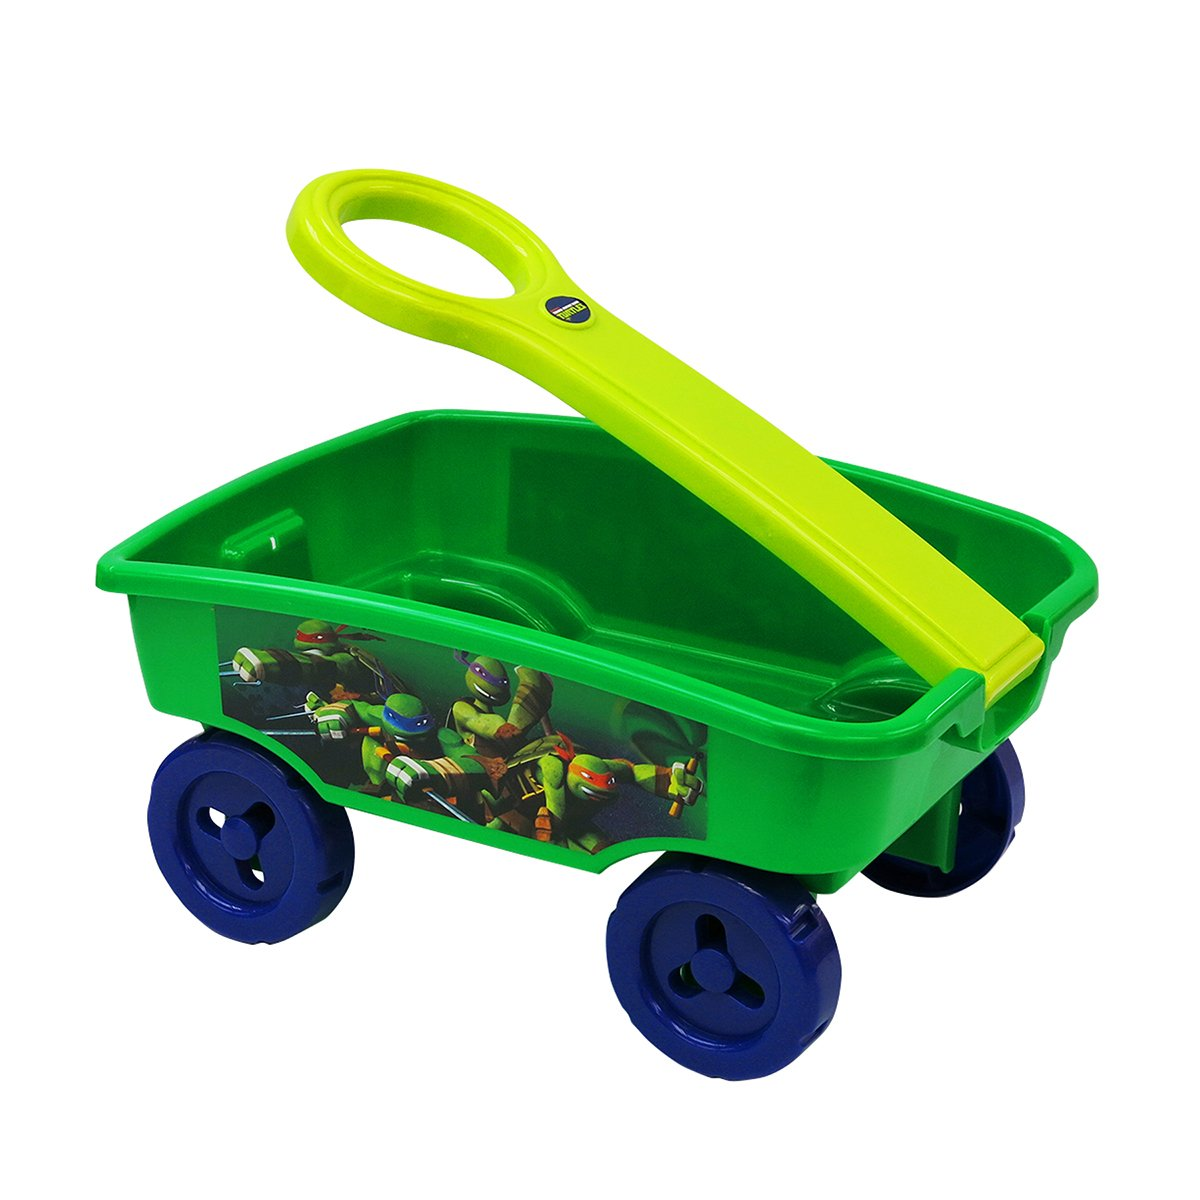 Teenage Mutant Ninja Turtles Extreme Wagon